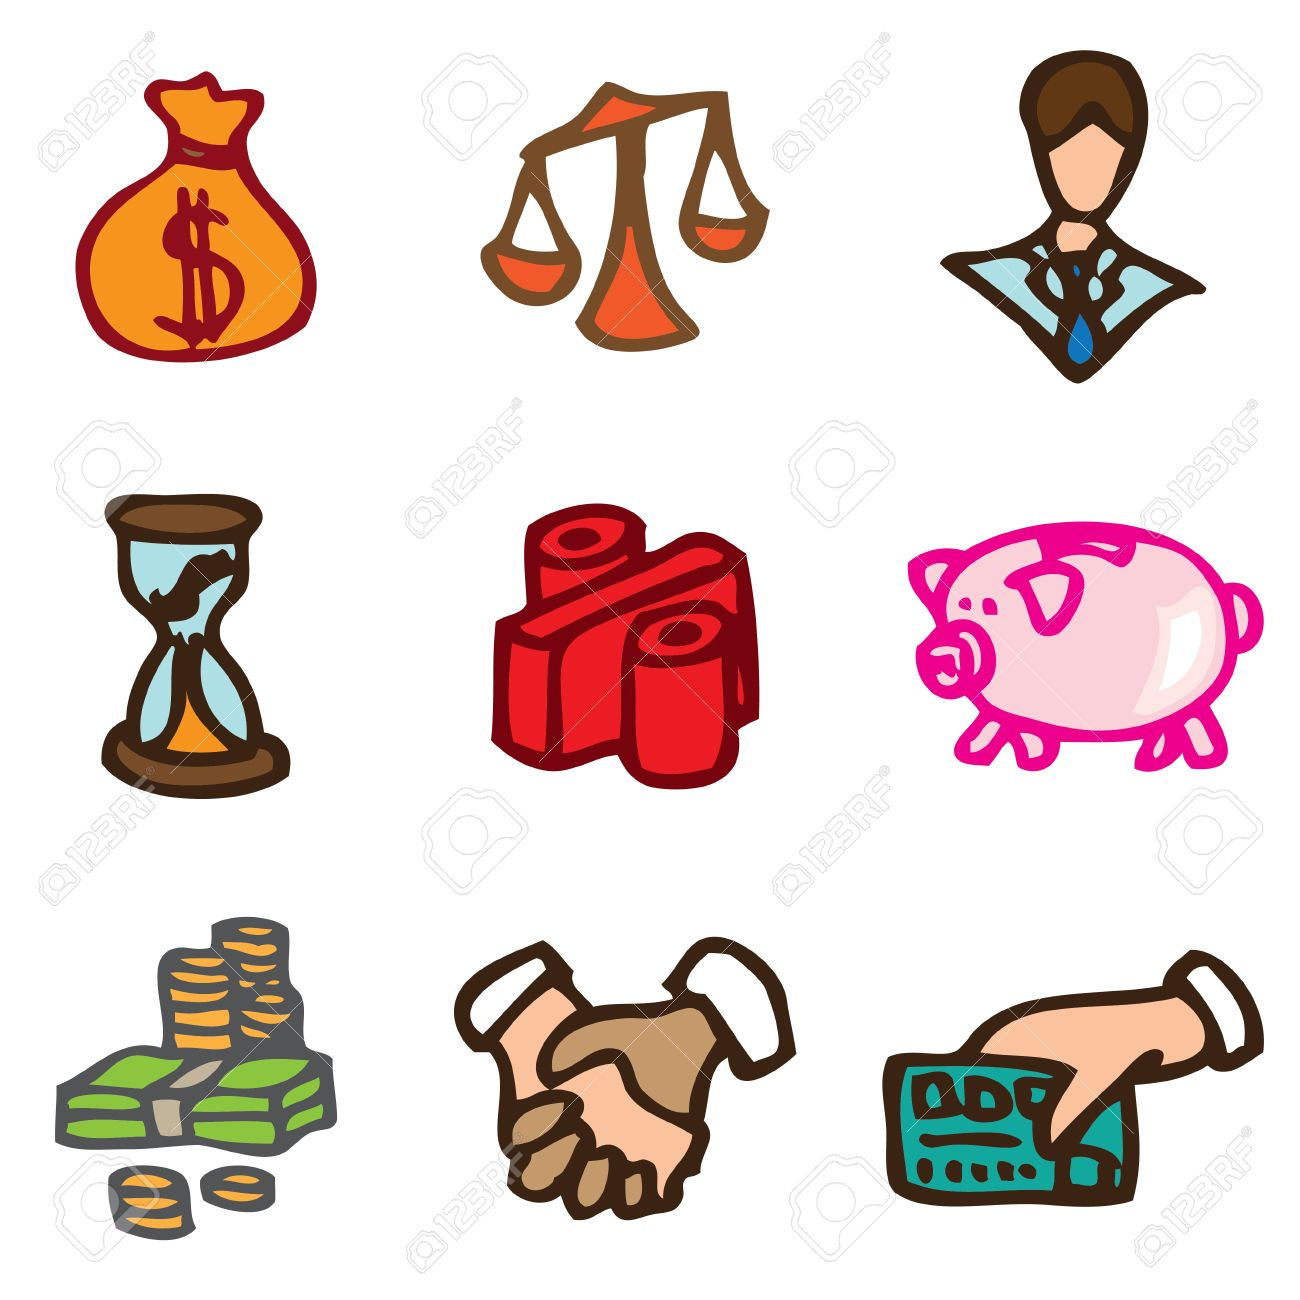 Economy and Finance hand drawn icons in vector Stock Vector - 16270809